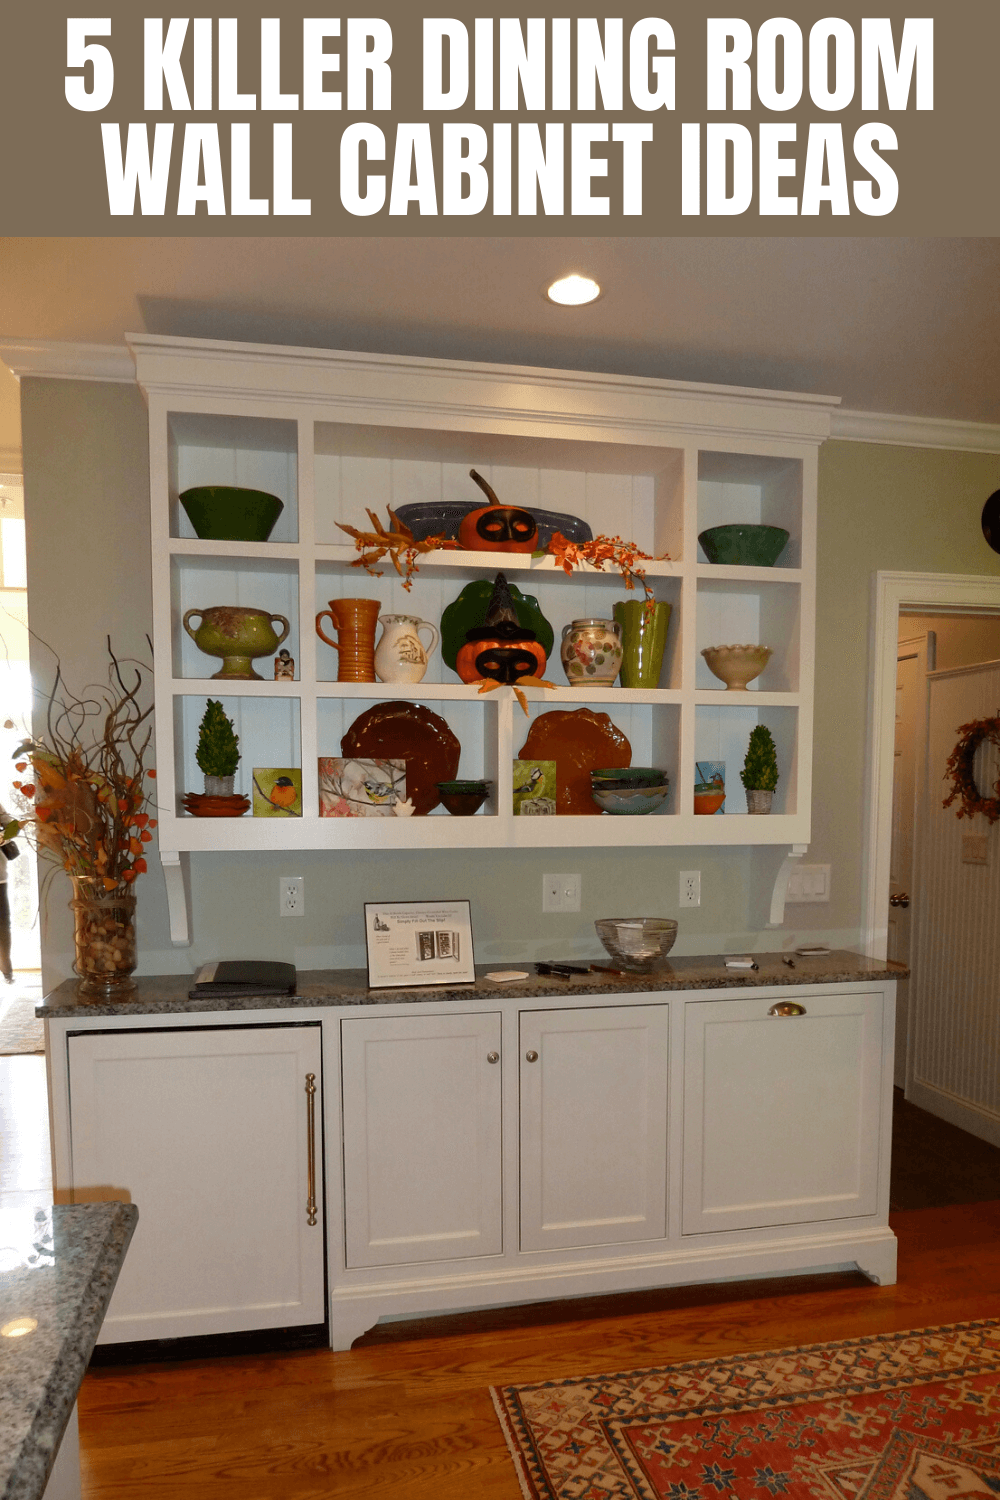 5 KILLER DINING ROOM WALL CABINET IDEAS